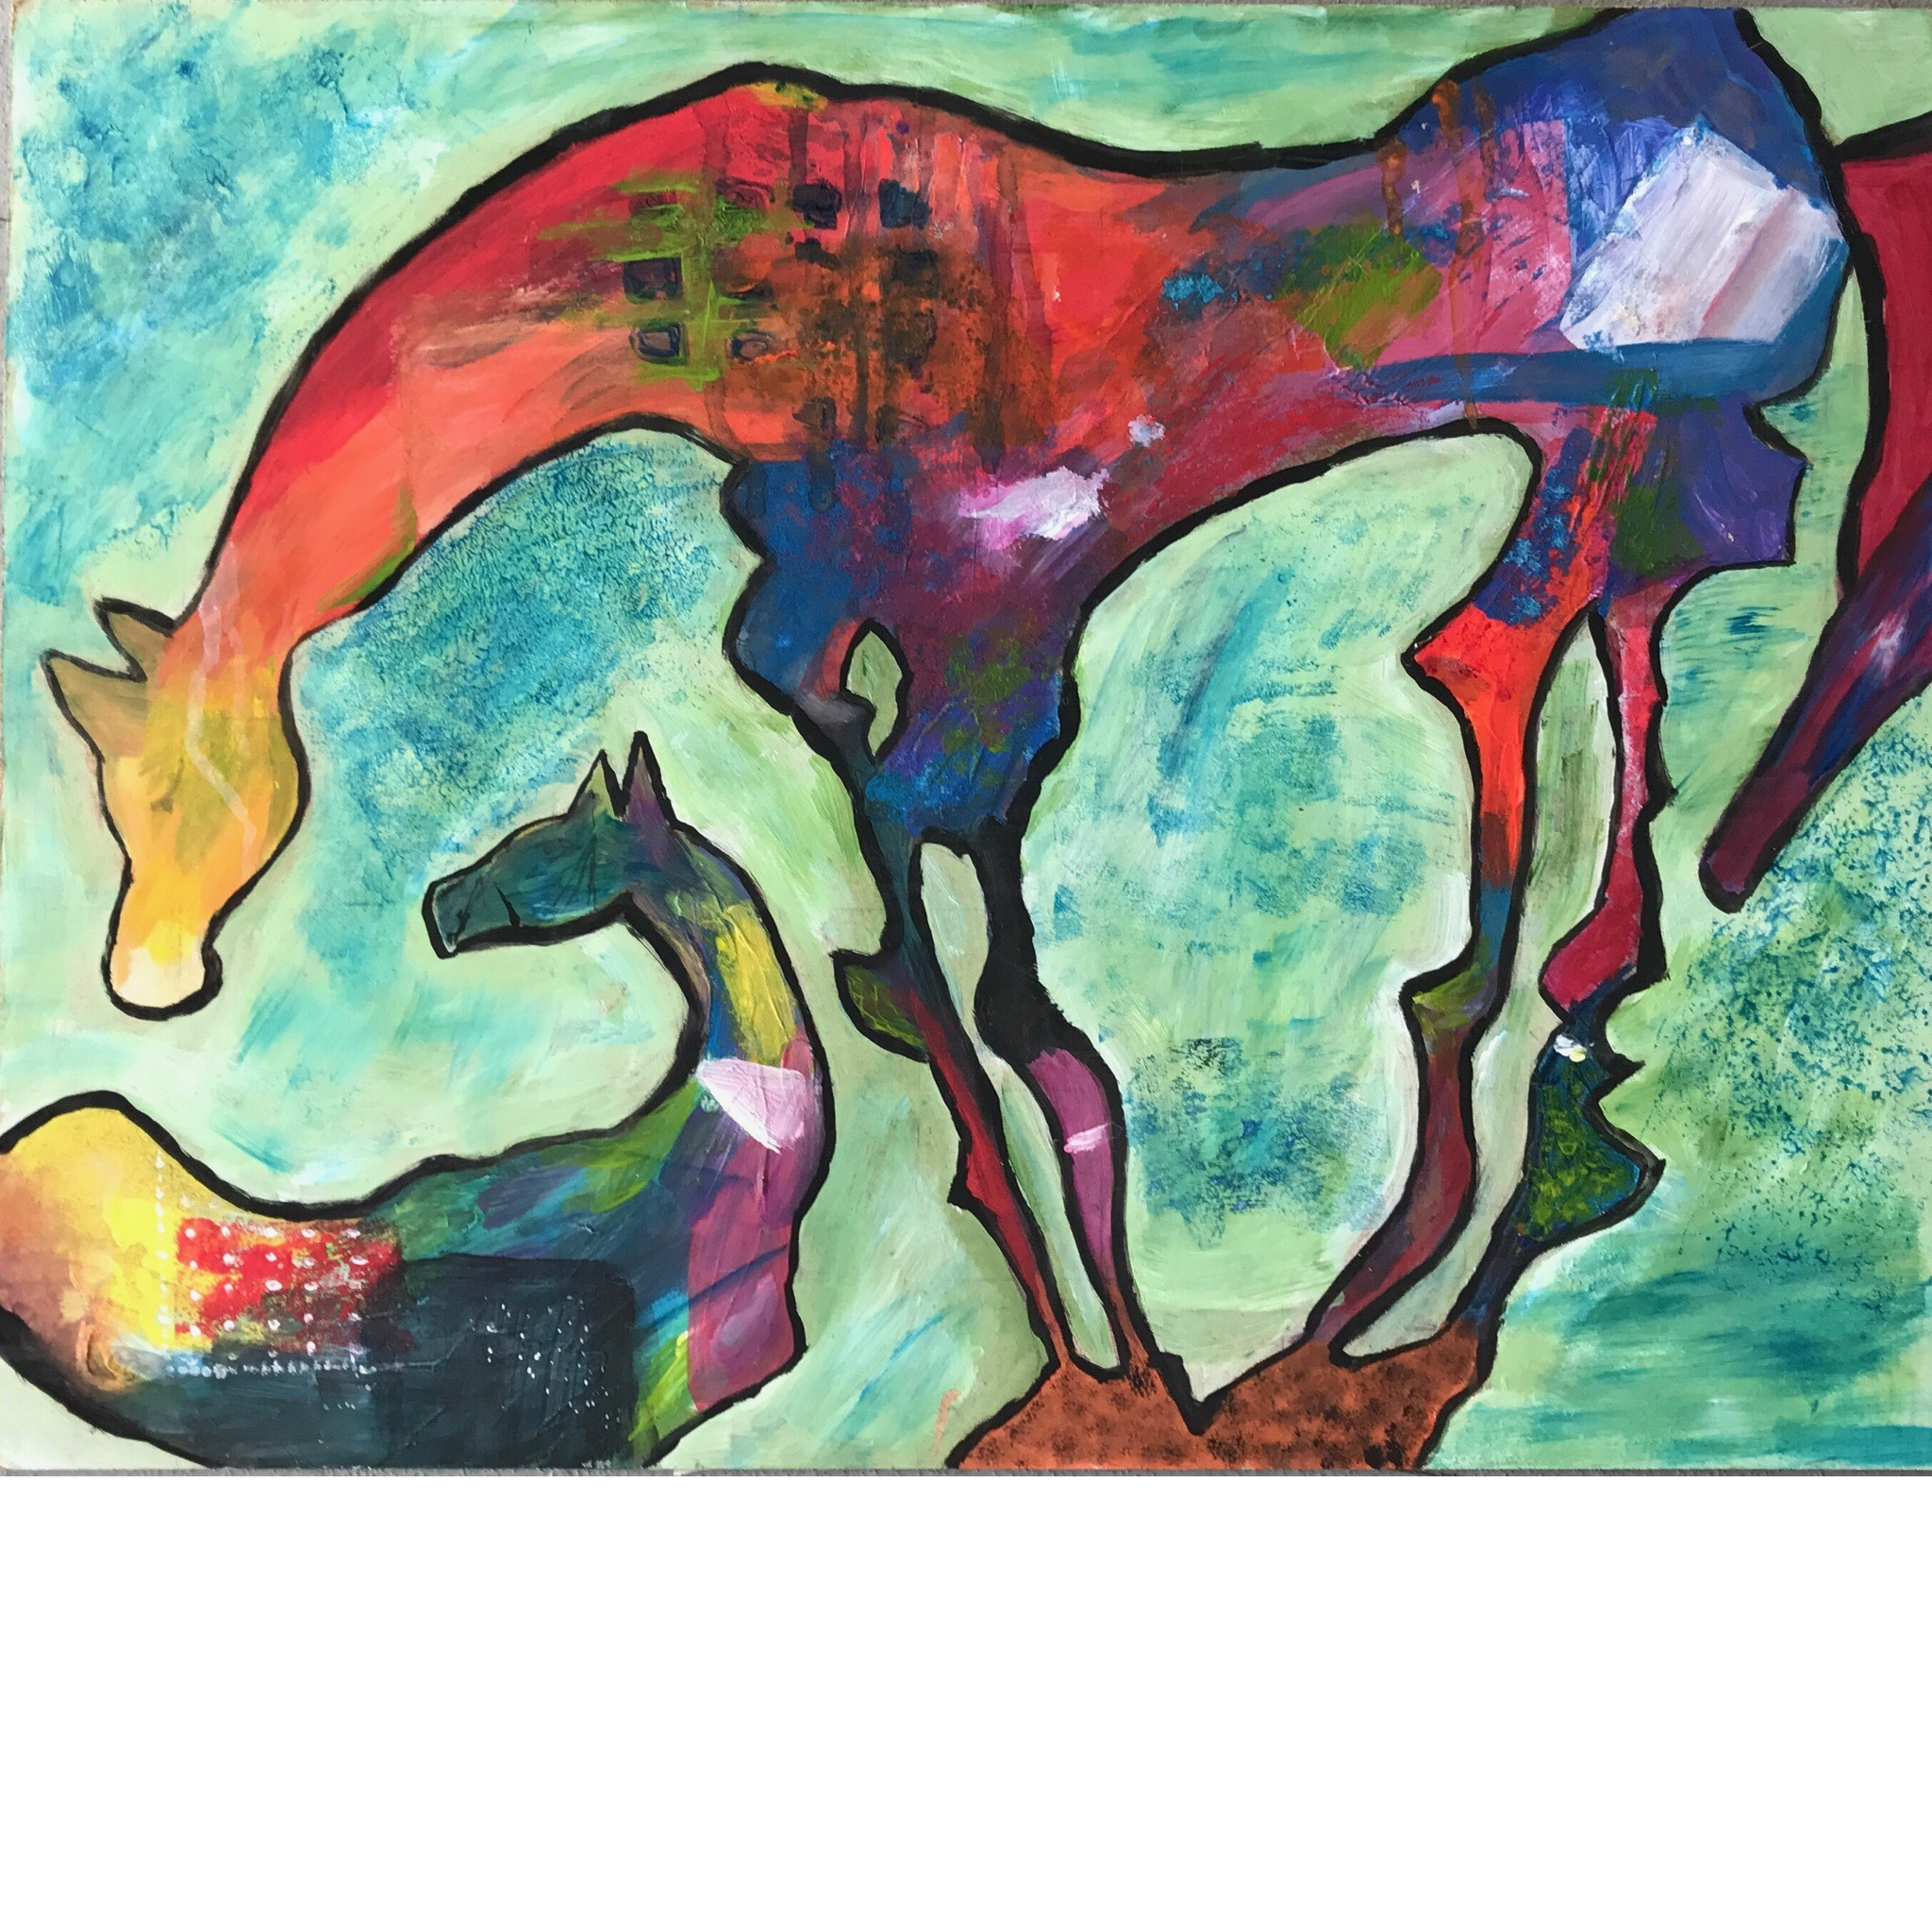 Gustonian Gifts & GG2, 357 pine street downtown Williamsport, will be featuring Hannah Wolf's paintings from 9 to 8 pm 10/6.